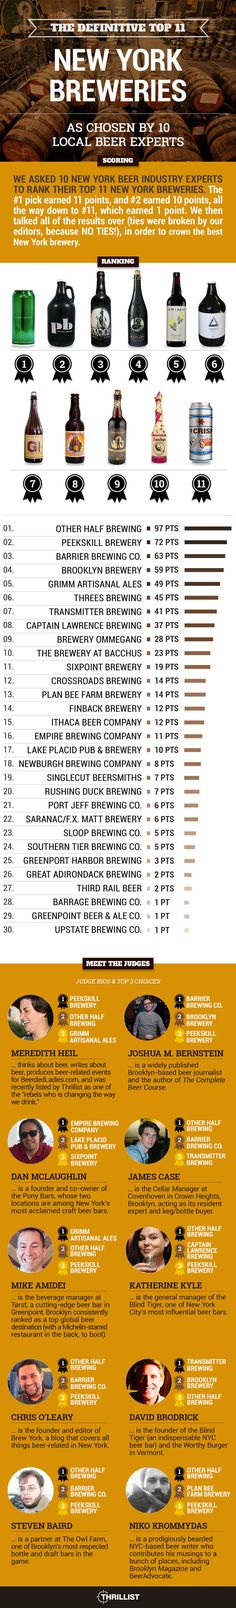 Best Breweries in New York State According to Beer Experts